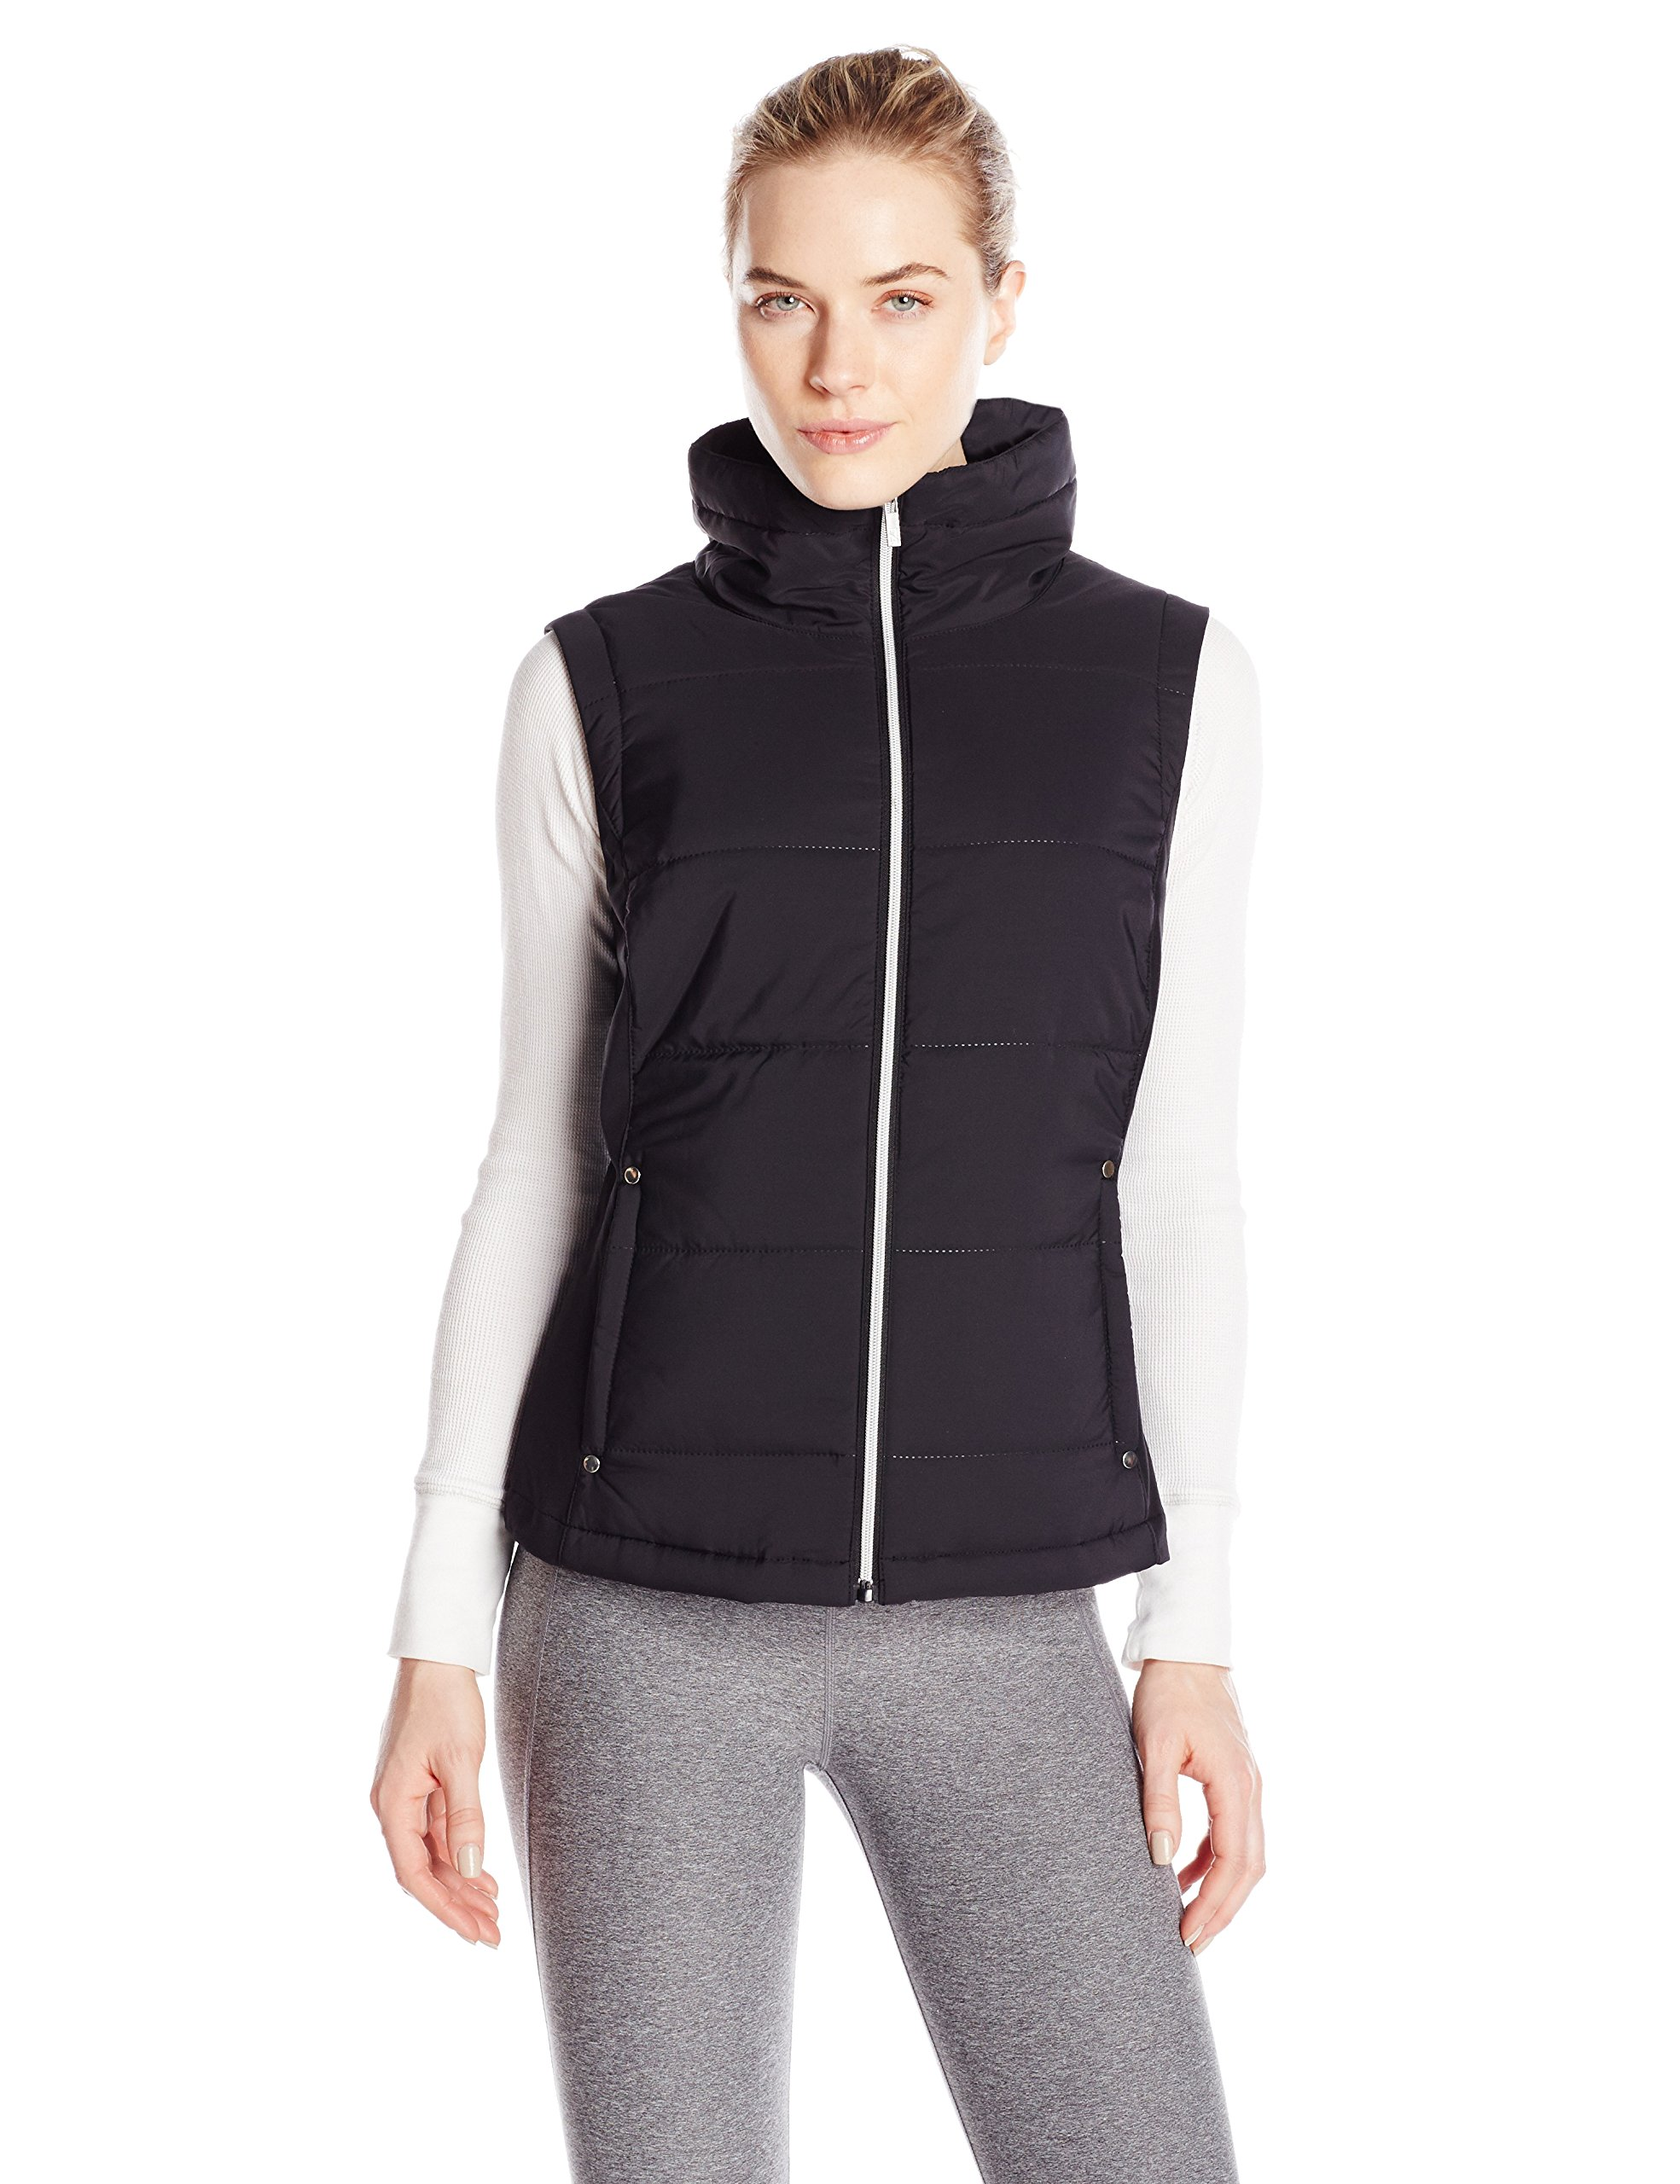 Cutter & Buck Women's CB Weathertec Claudia Quilted Vest, Black, Large by Cutter & Buck (Image #1)